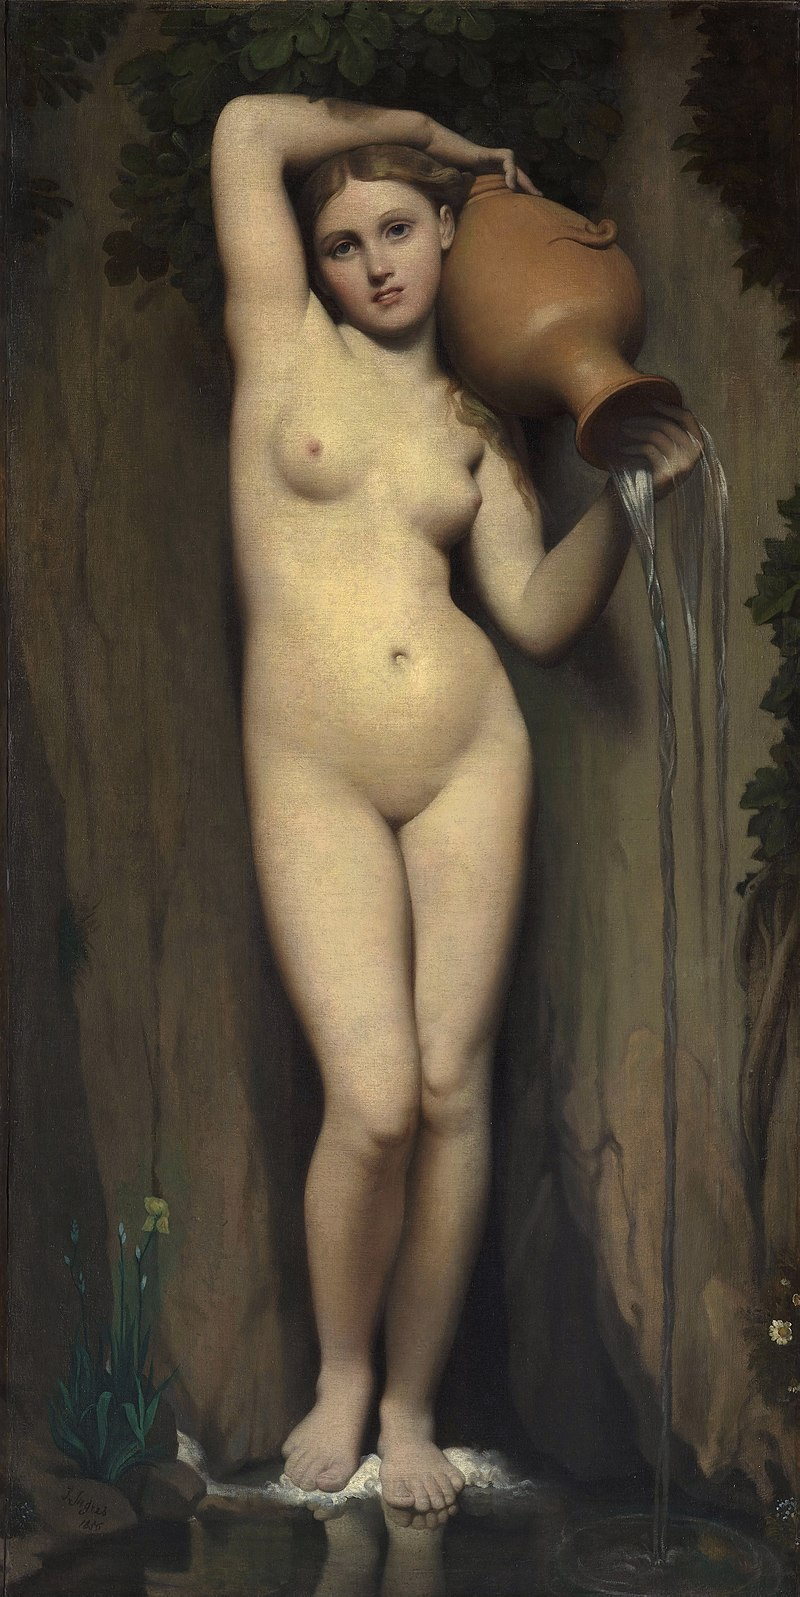 800px-Jean_Auguste_Dominique_Ingres_-_The_Spring_-_Google_Art_Project_2